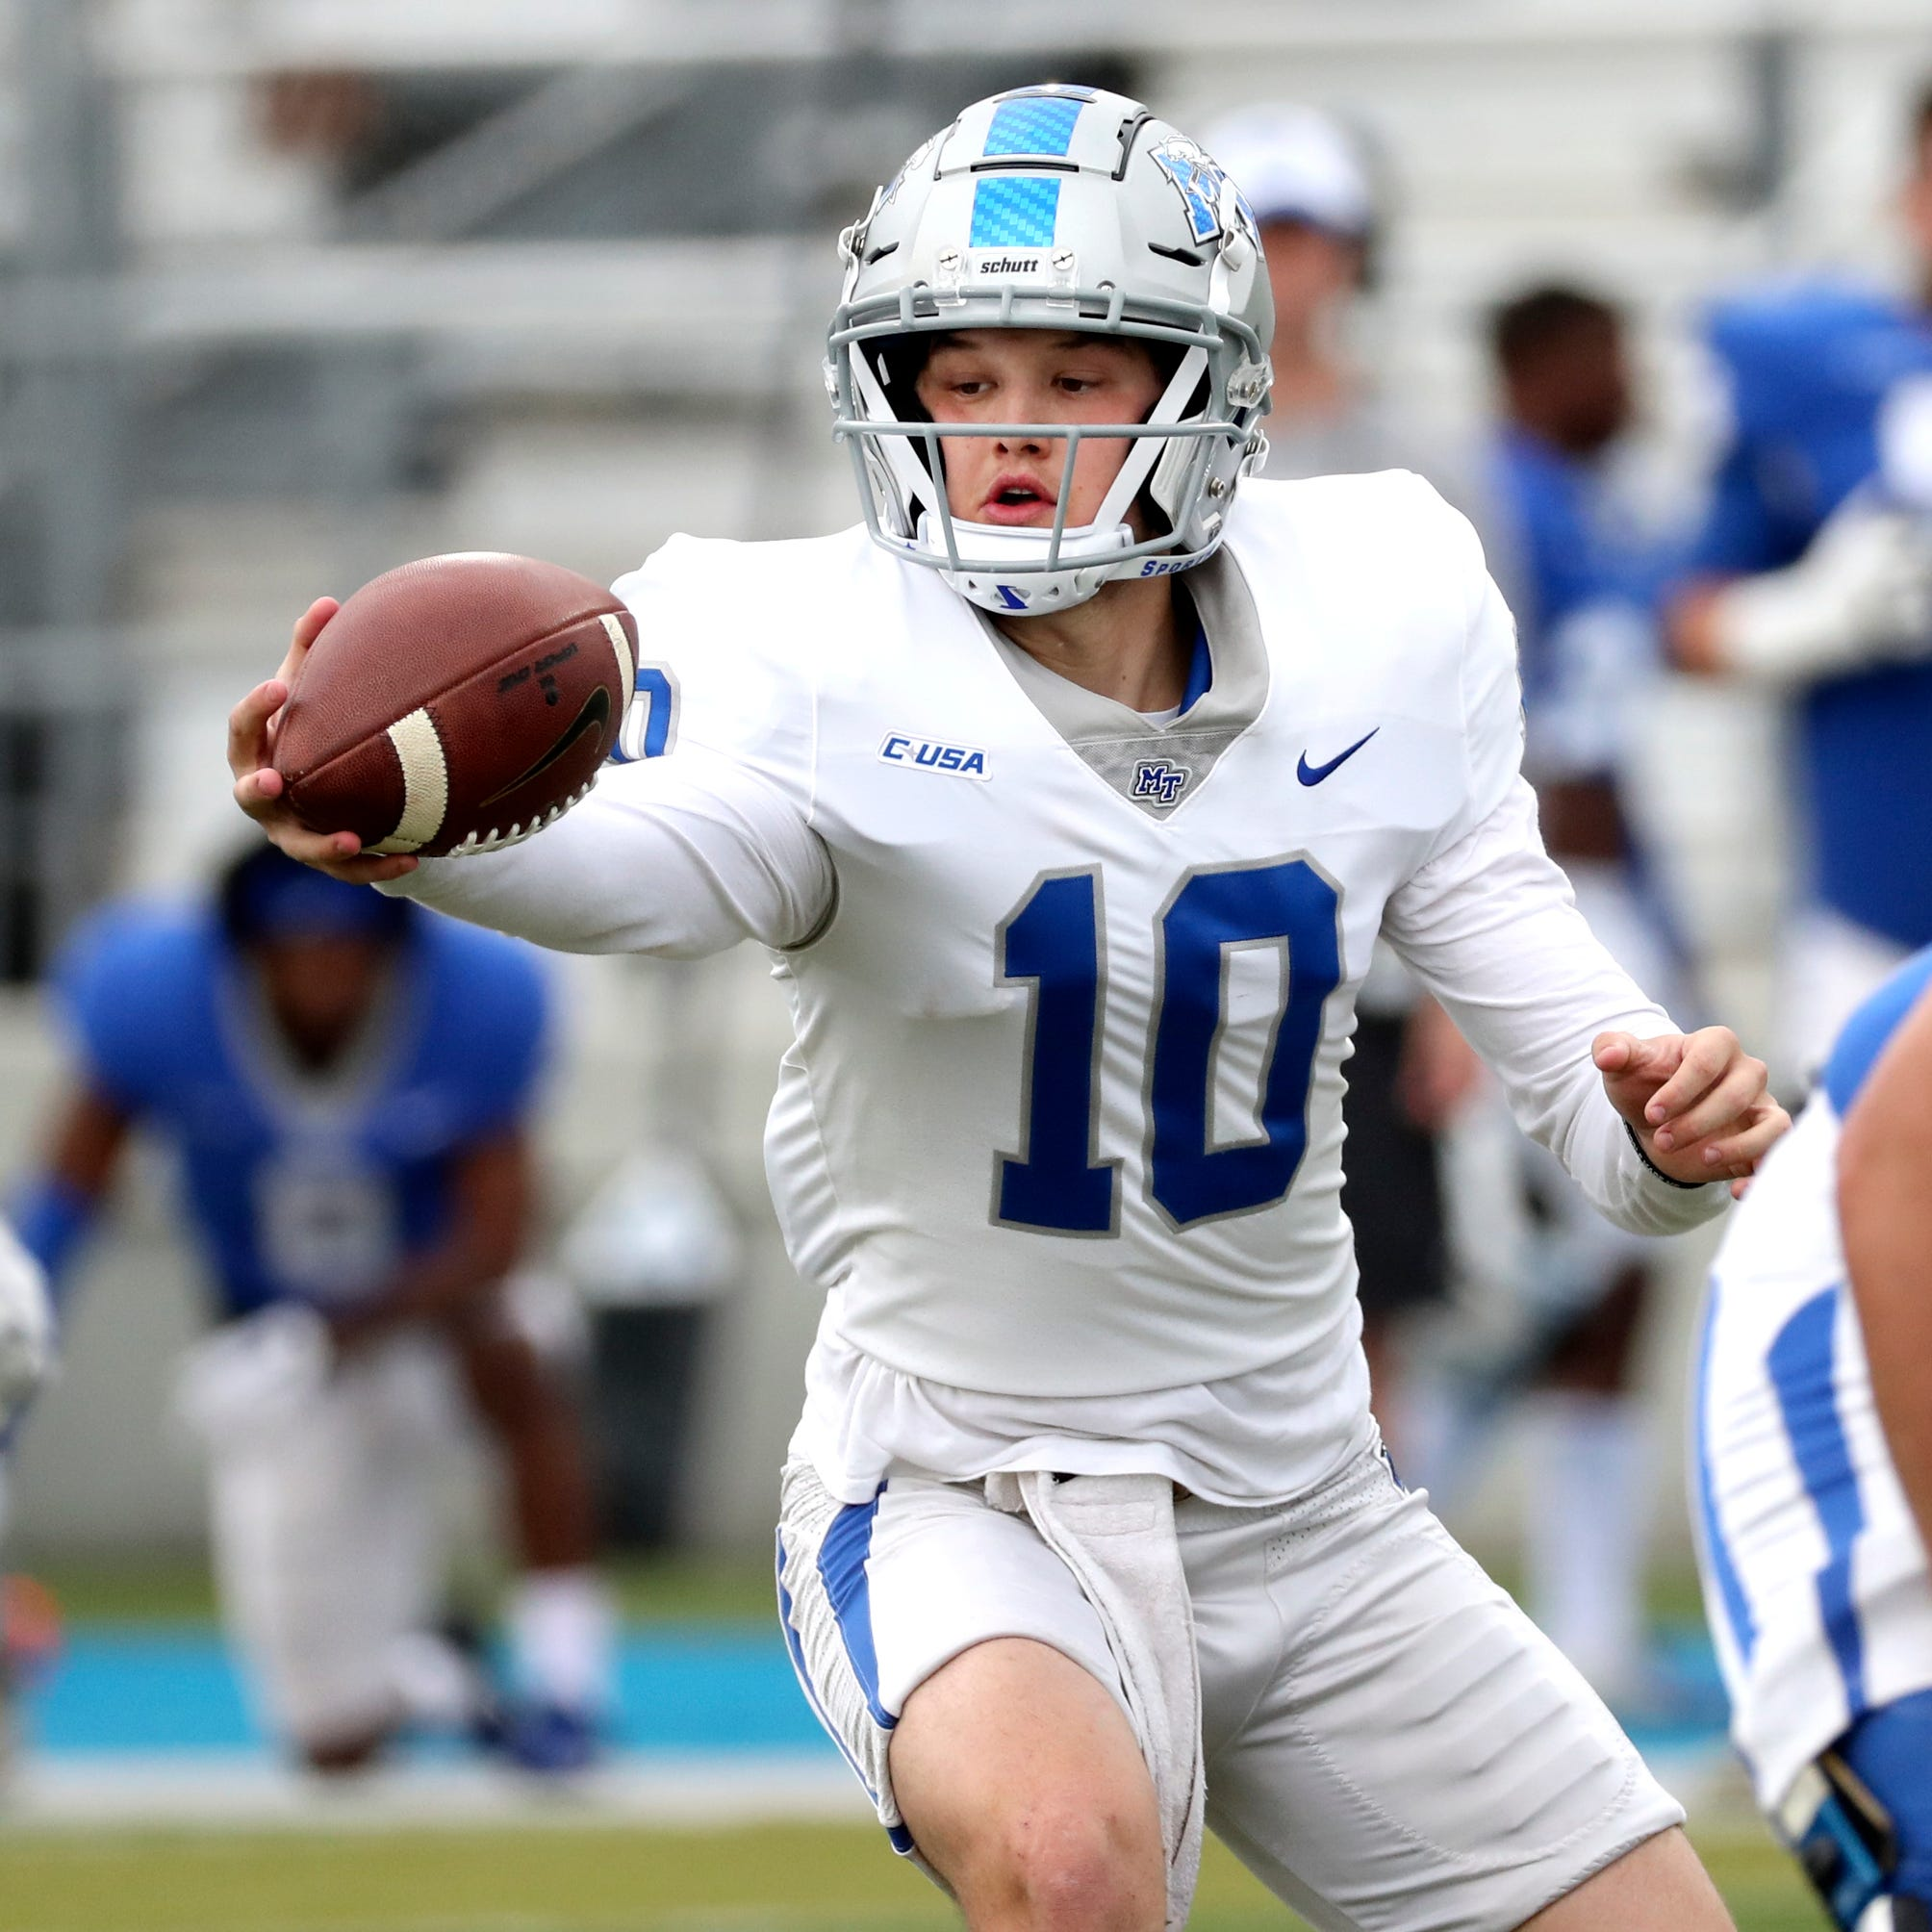 MTSU's quarterback battle still a question following the end of spring practice